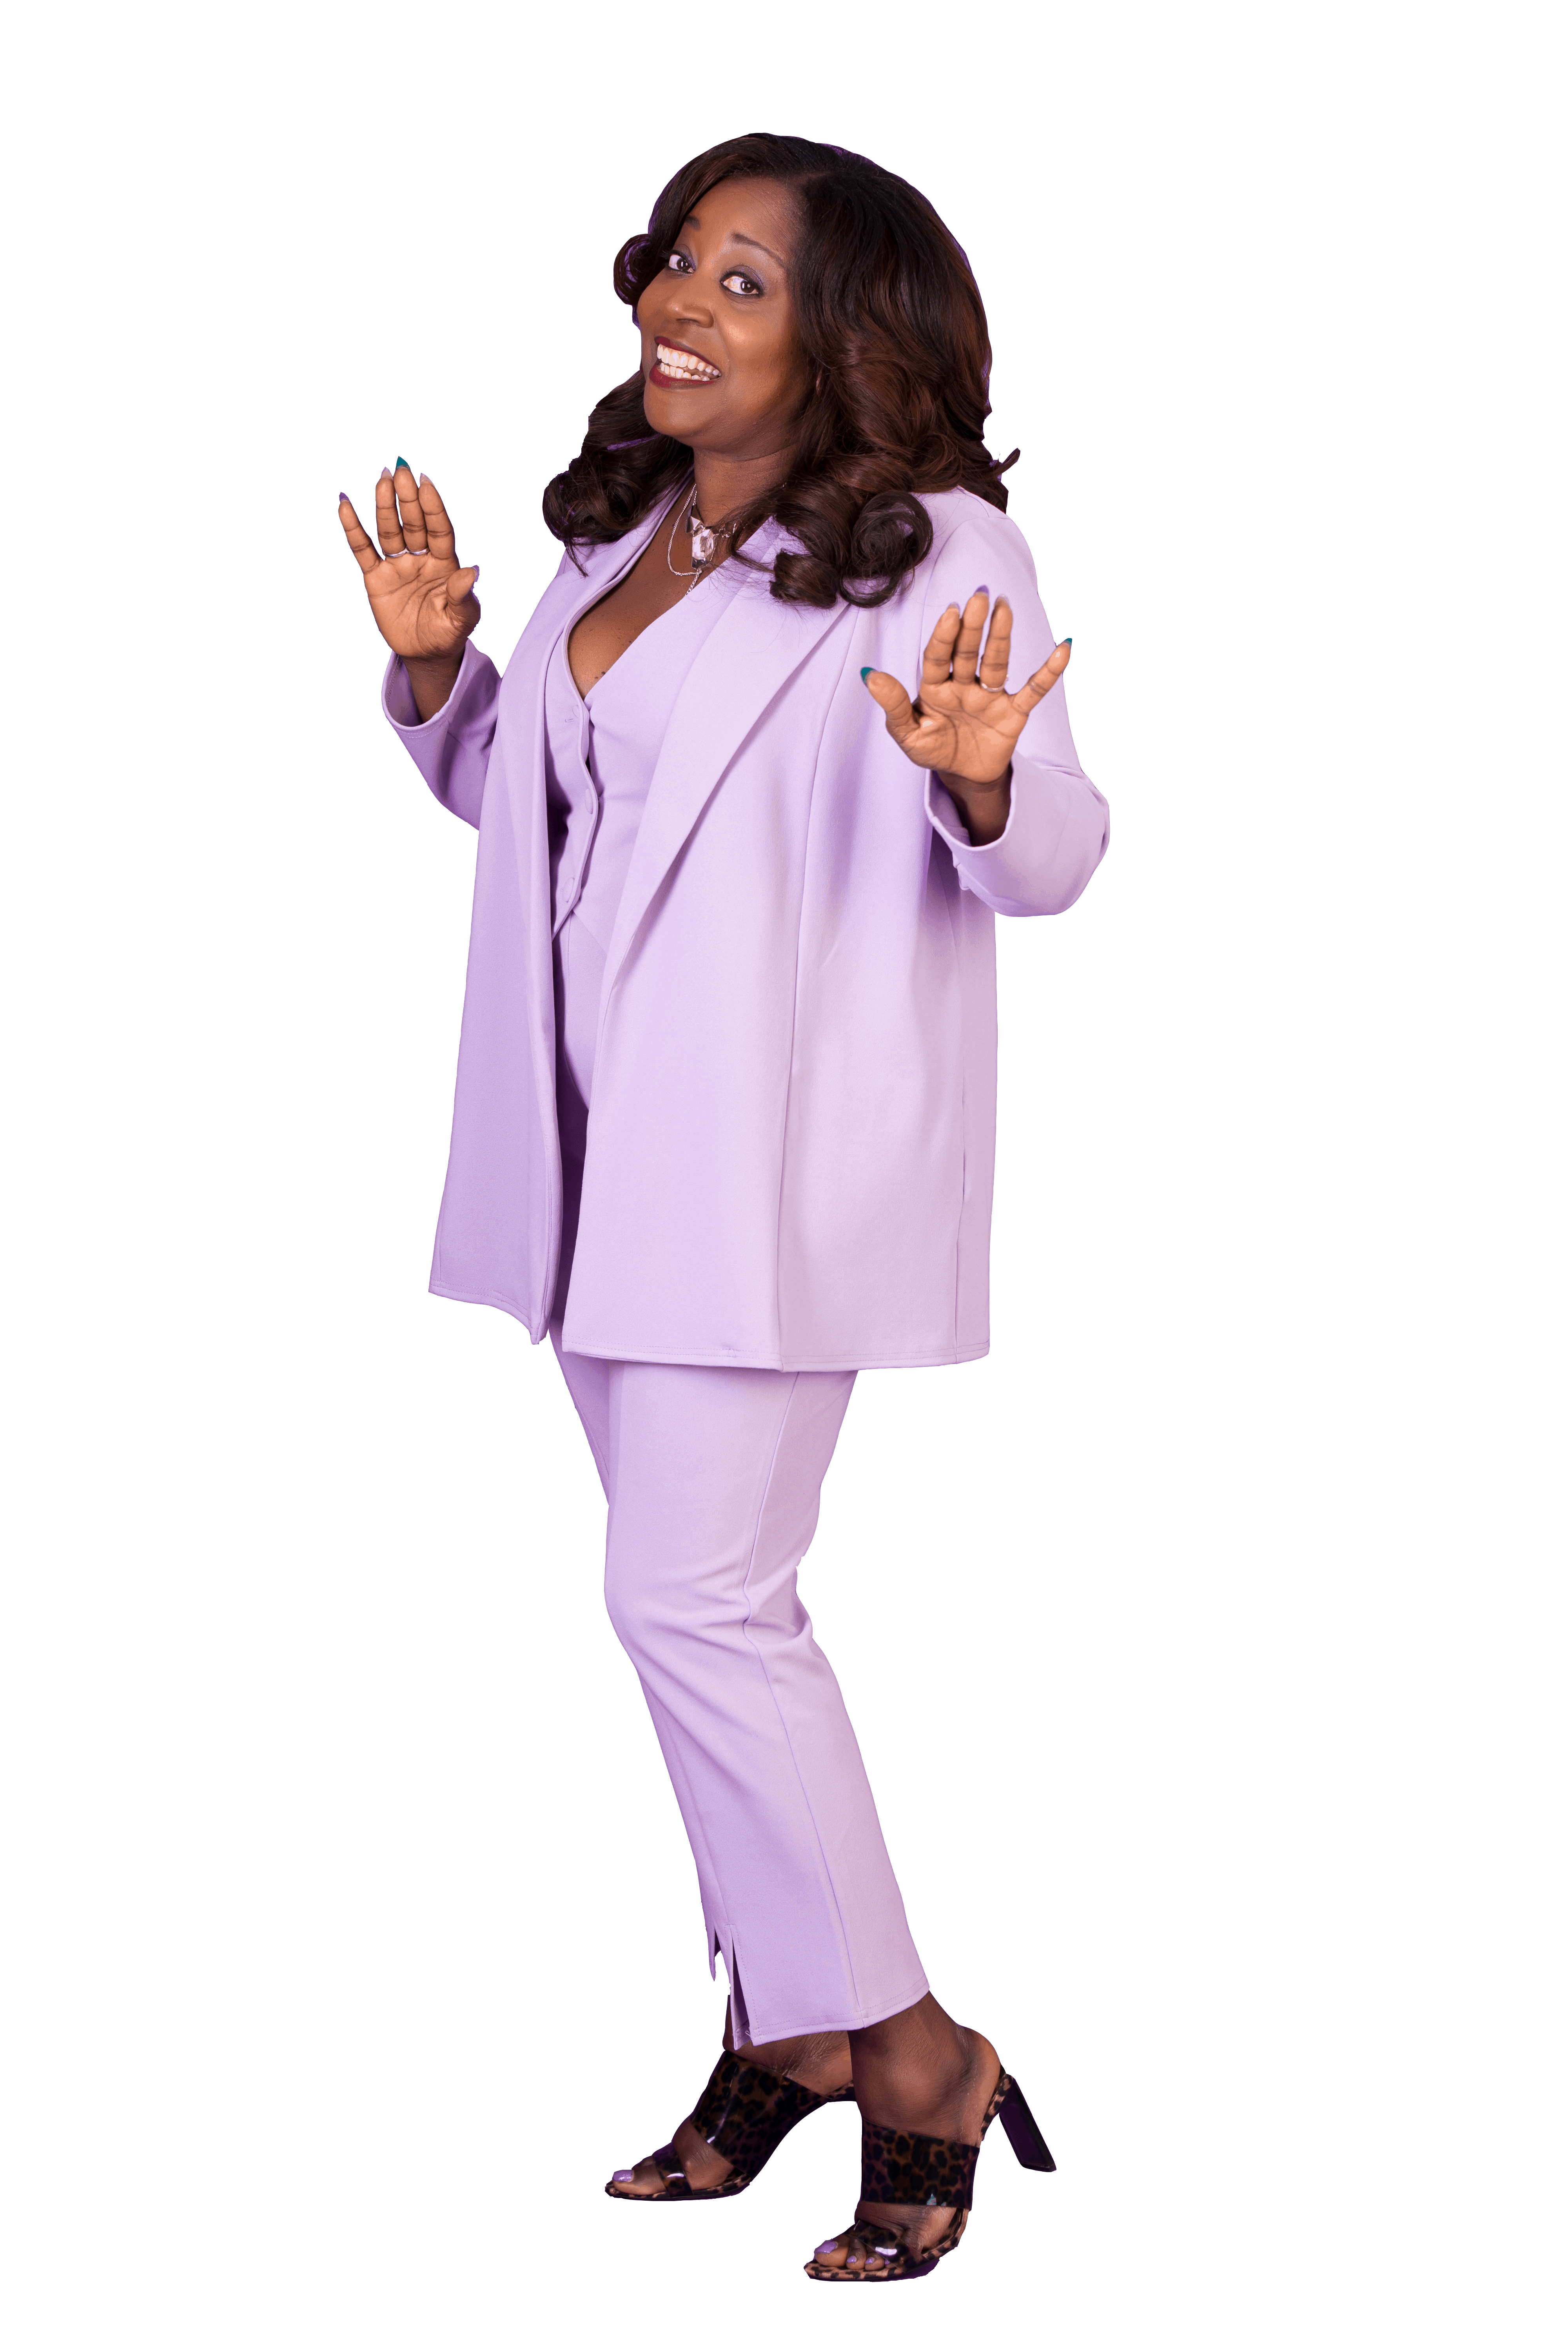 Bernie in a purple suit